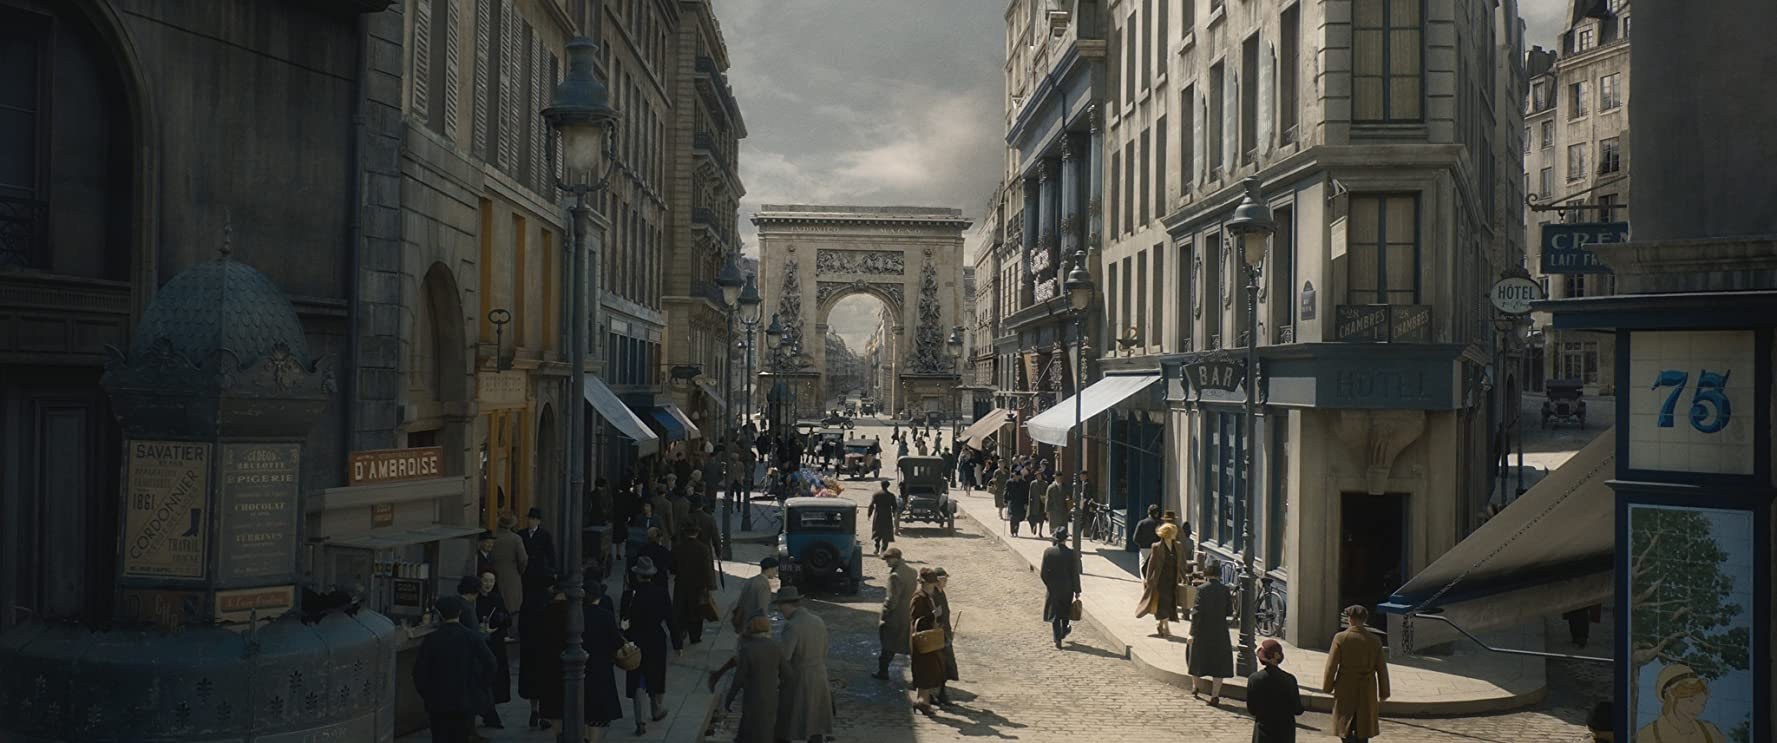 Resultado de imagem para fantastic beasts the crimes of grindelwald paris